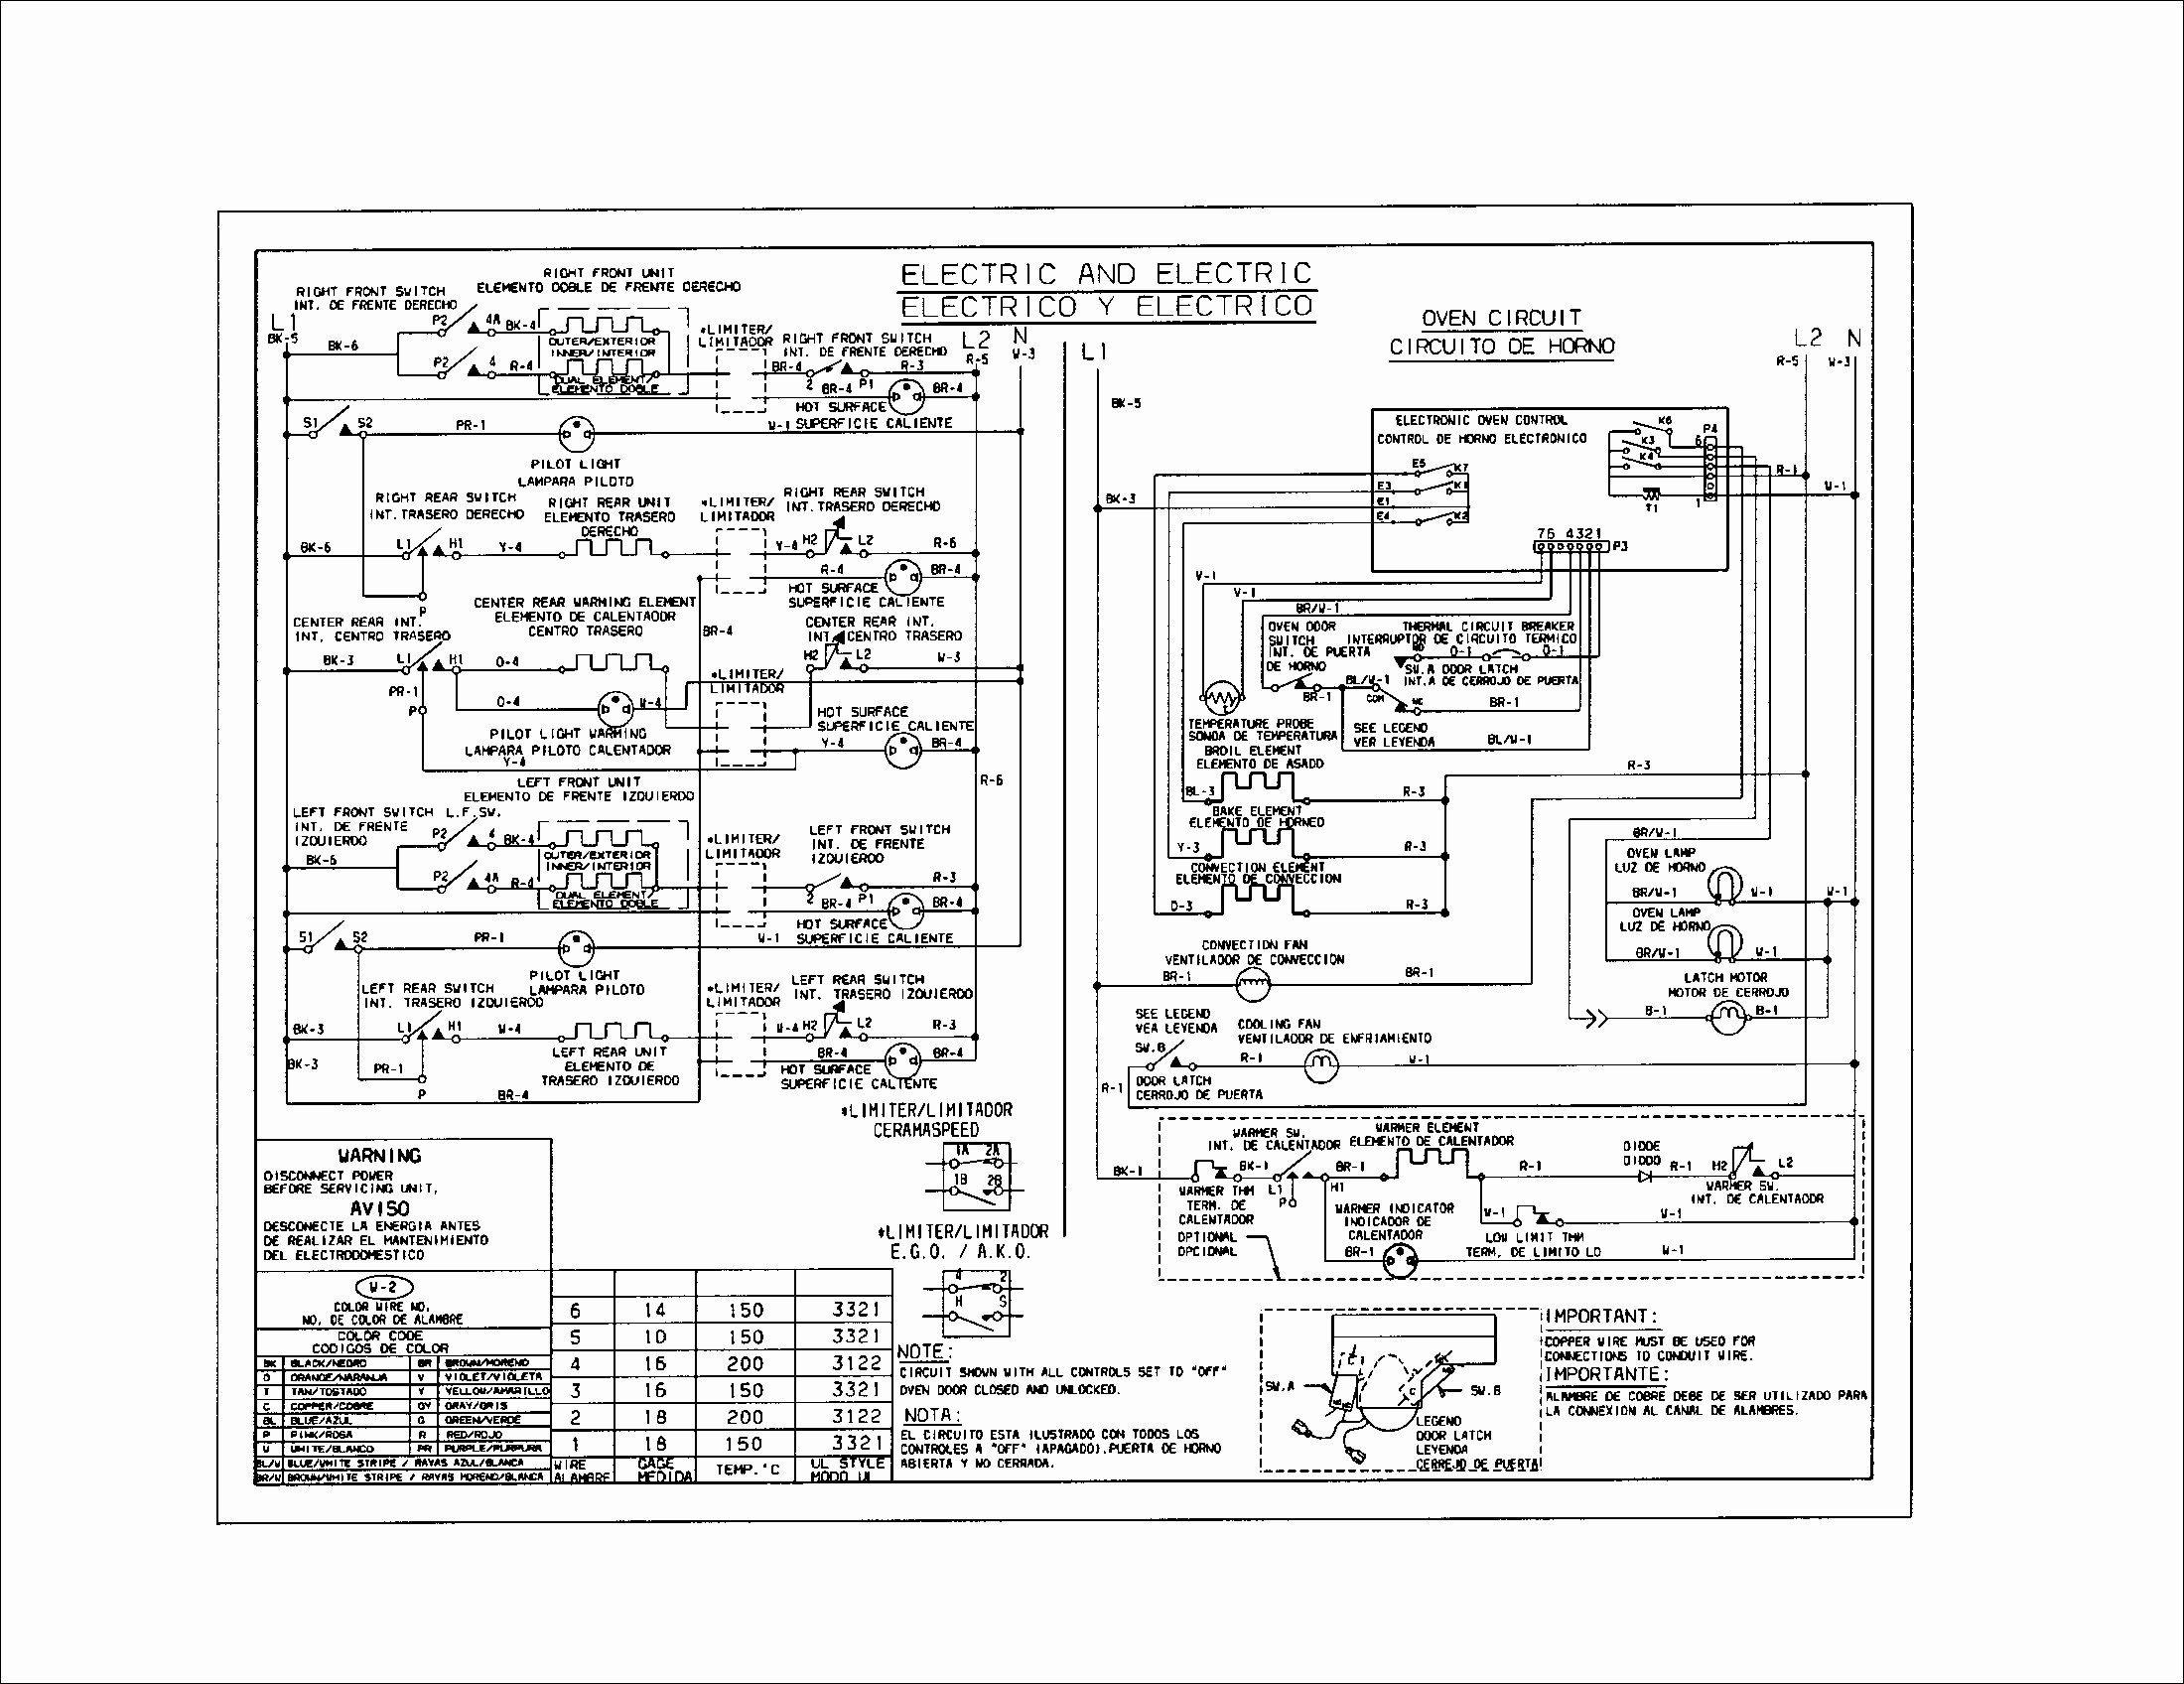 Kenmore He4 Heating Element Wiring Diagram | Wiring Diagram on kenmore dryer repair manual, kenmore clothes dryer diagram, kenmore elite diagram, ge dryer diagram, refrigerator wiring diagram, dryer wire diagram, whirlpool electric dryer diagram, whirlpool dryer fuse diagram, electric dryer connection diagram, kenmore elite dryer heating element location, kenmore dryer heating element diagram, amana dryer heating element diagram, hotpoint electric dryer parts diagram, kenmore dryer door switch diagram, whirlpool oven wiring diagram, kenmore dryer model 110, kenmore dryer schematics, kenmore 110 dryer no heat, kenmore model 110 schematic, kenmore dryer repair diagram,